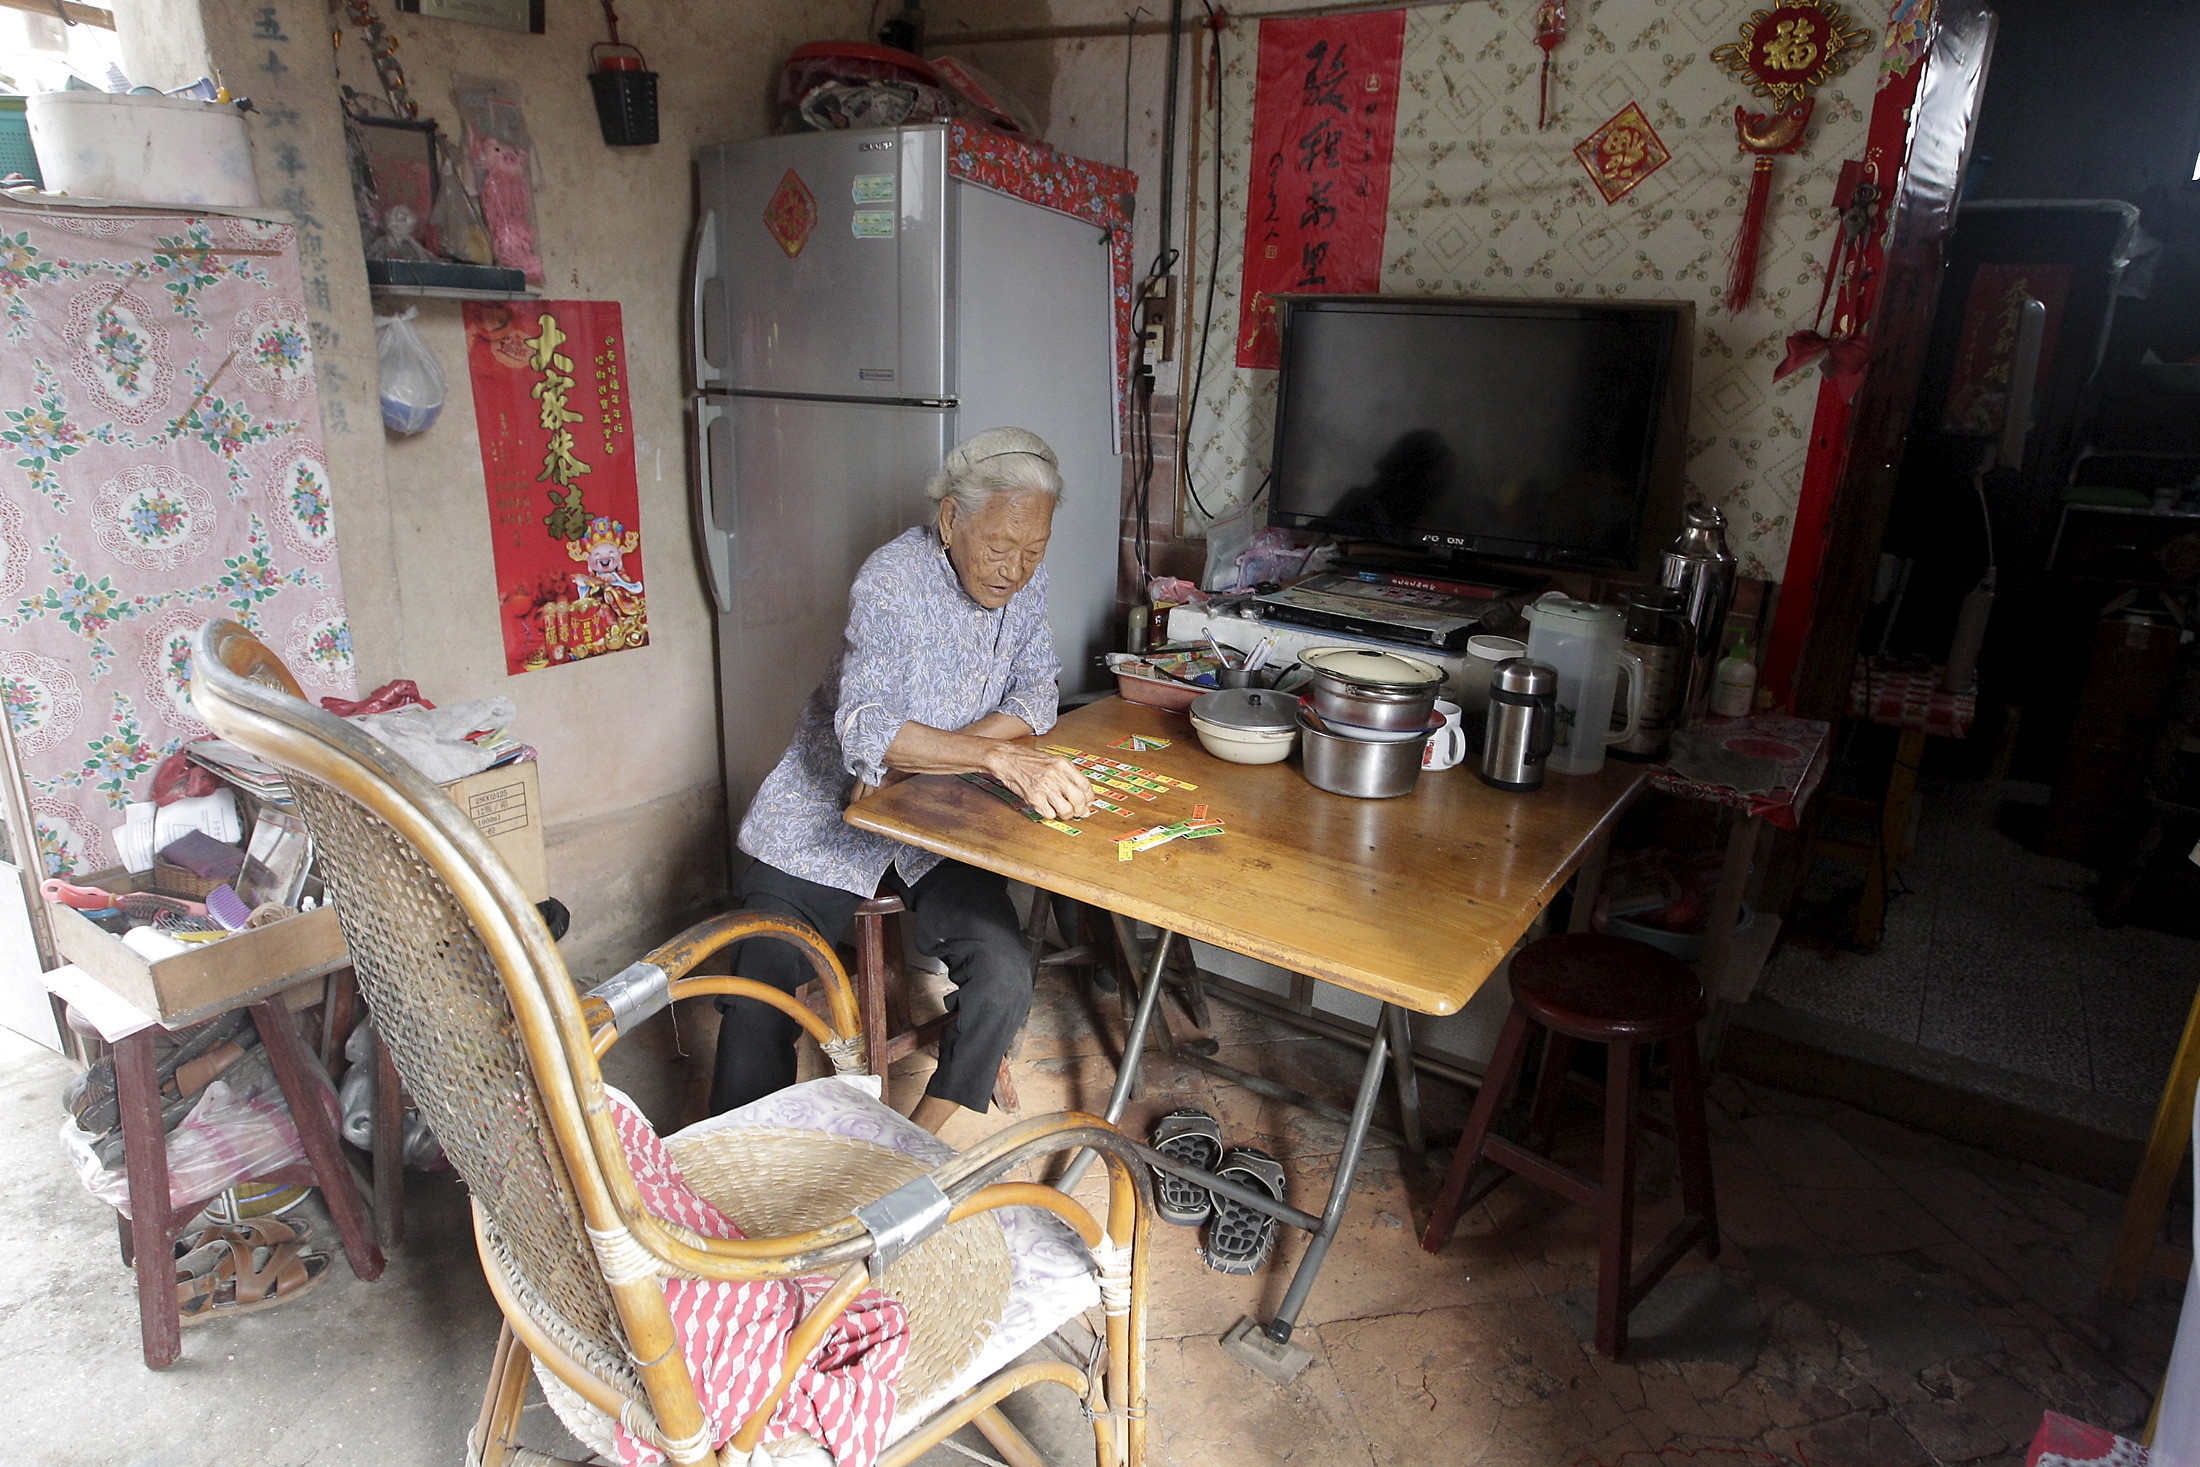 An elderly woman plays cards in a village in Taiwan.